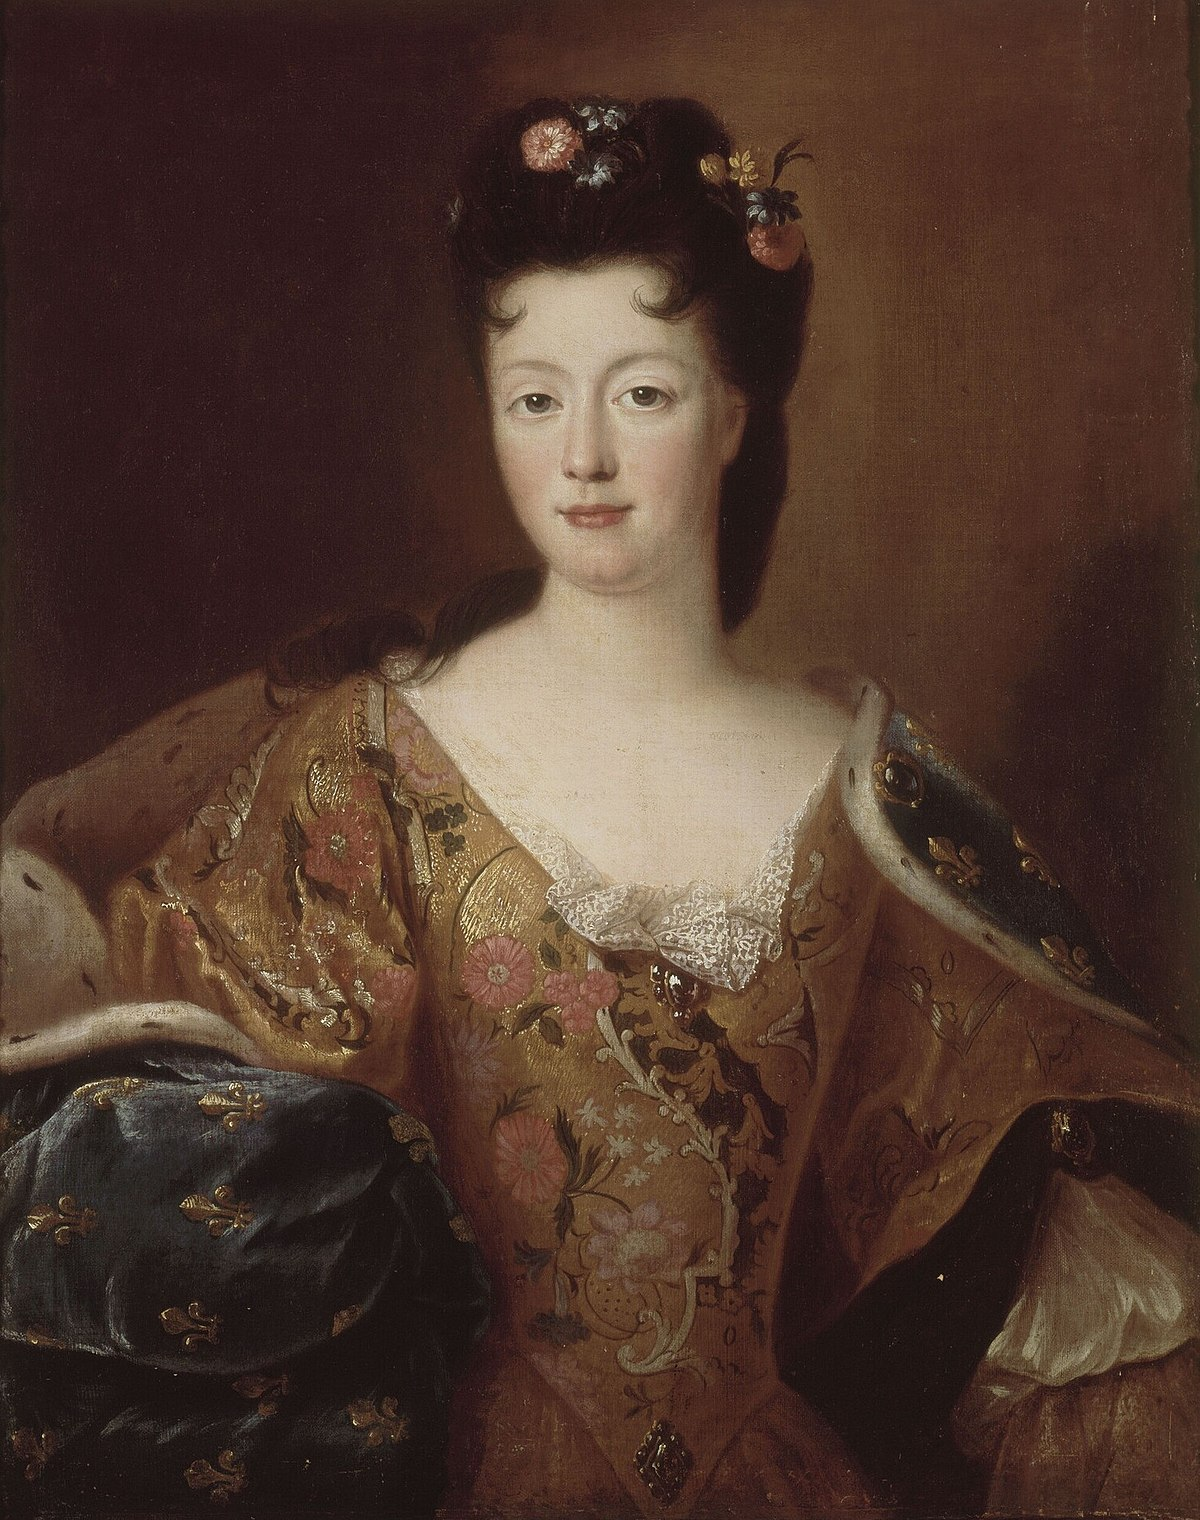 Gobert, workshop of - Élisabeth Charlotte d'Orléans - Versailles, MV3690.jpg